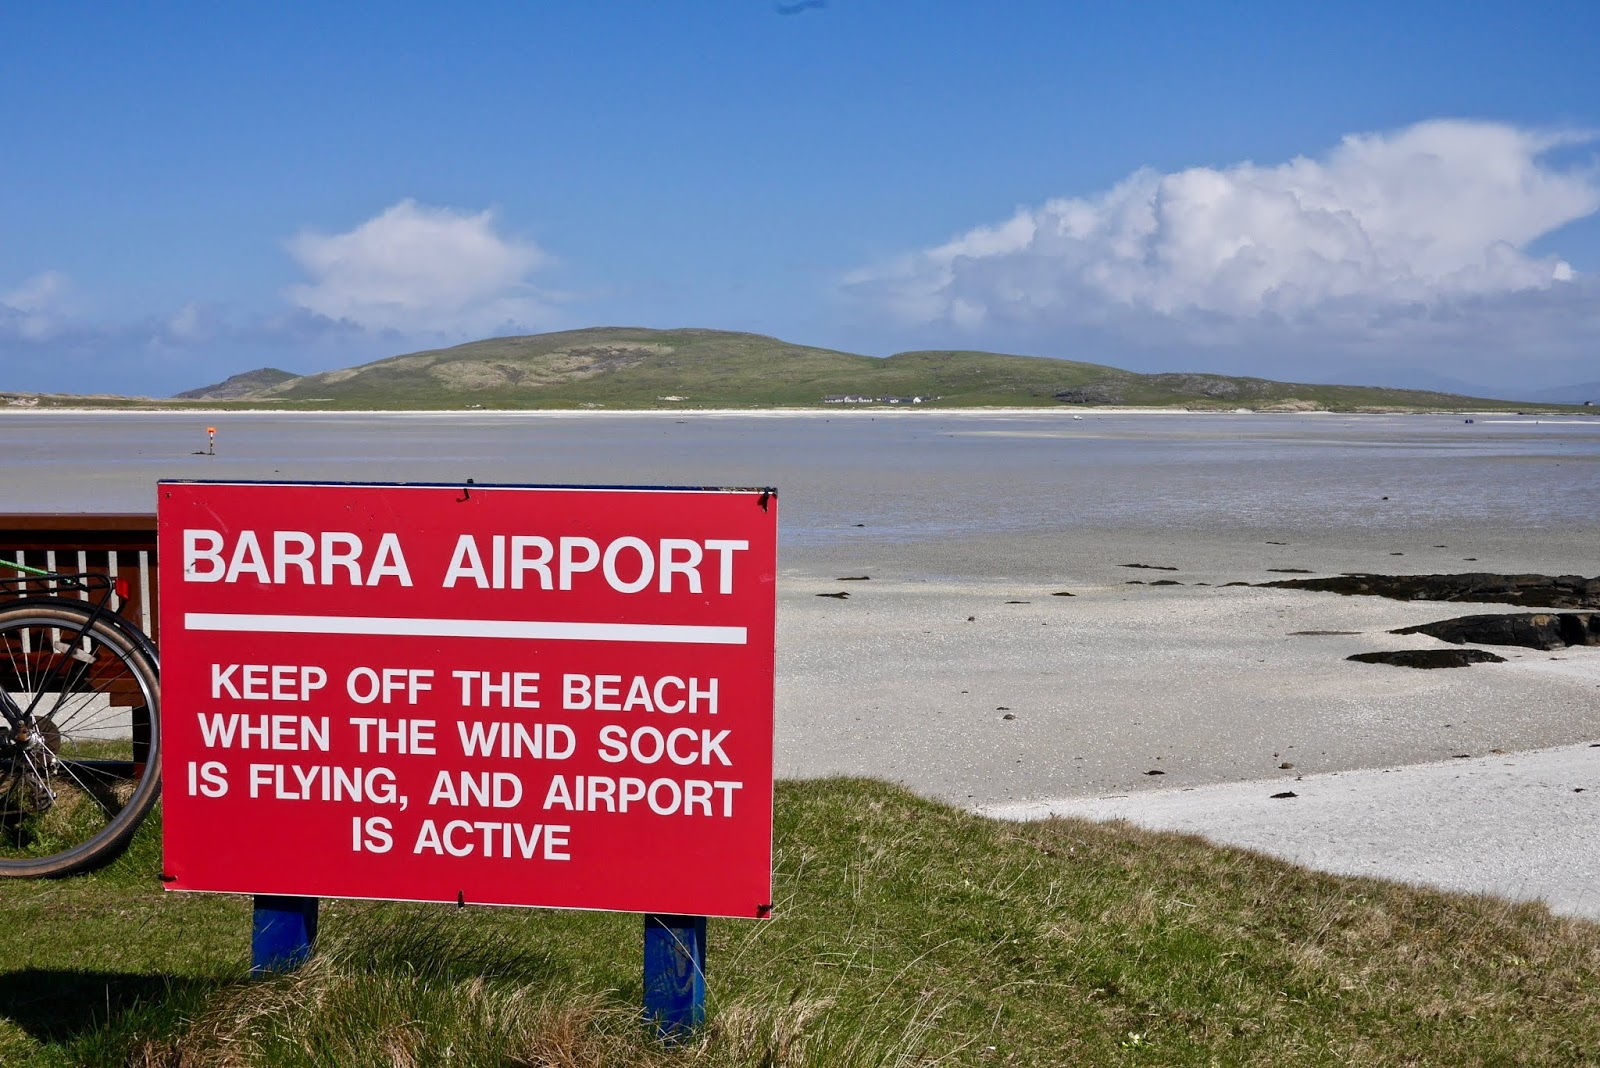 Barra Airport Runway by Cal McTravel of www.CalMcTraves.com